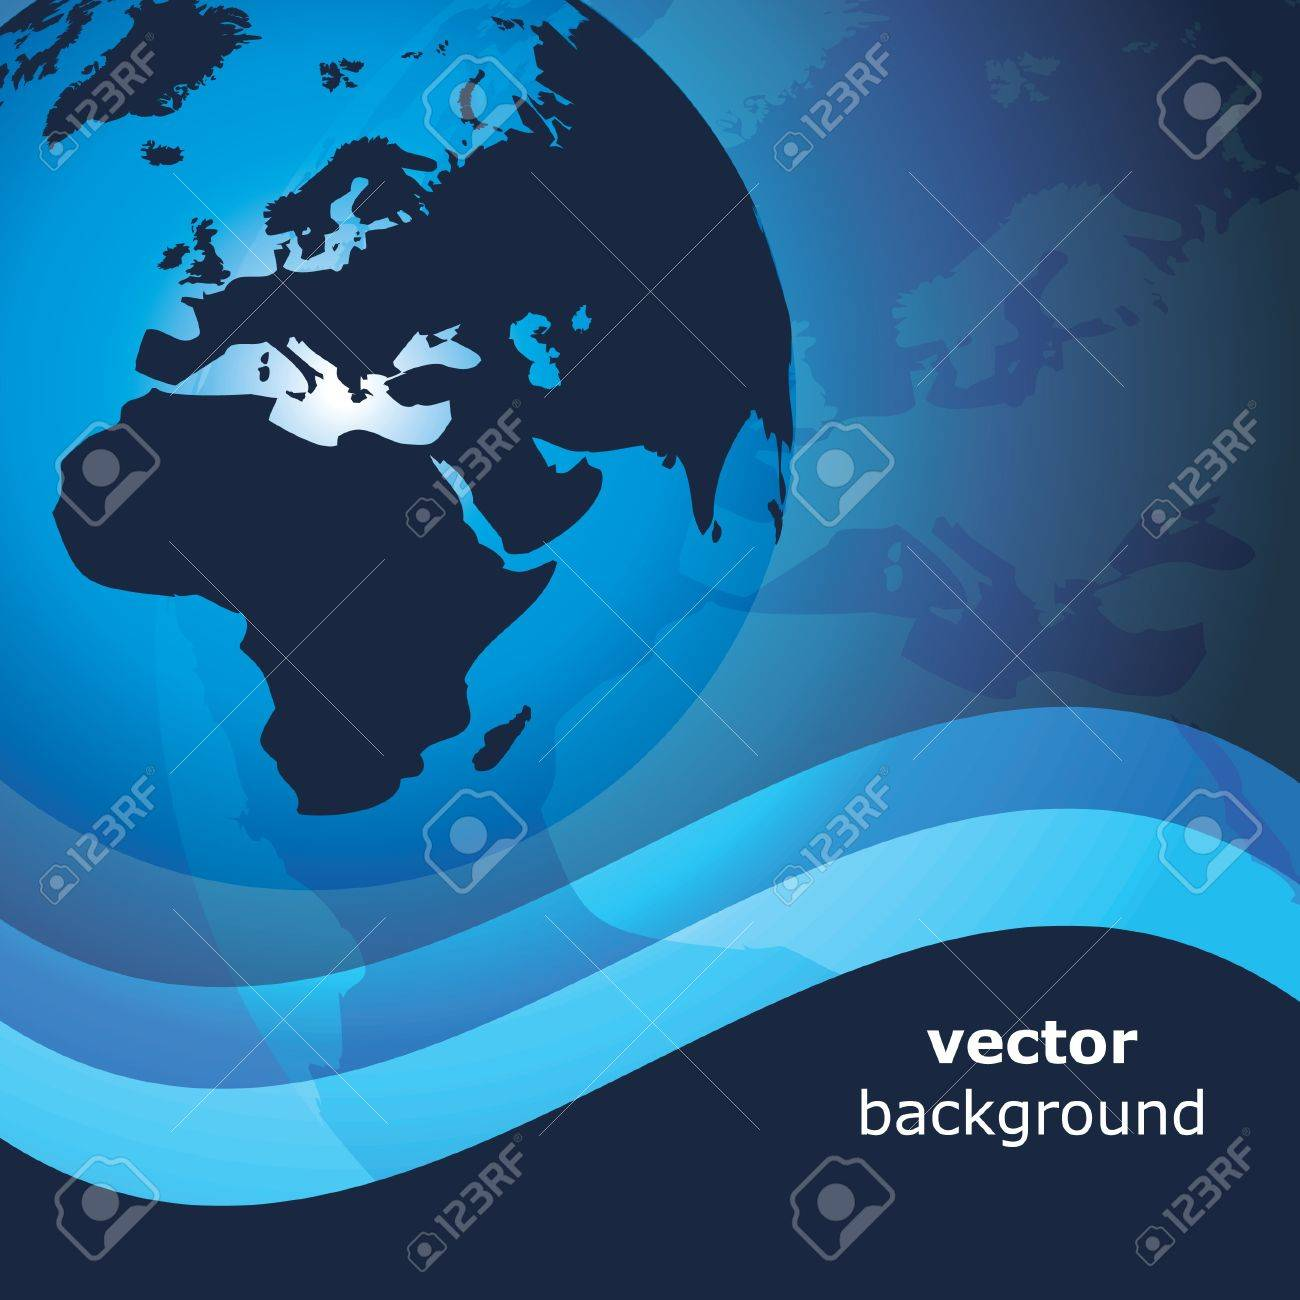 3d earth abstract background - vector illustration Stock Vector - 11908327